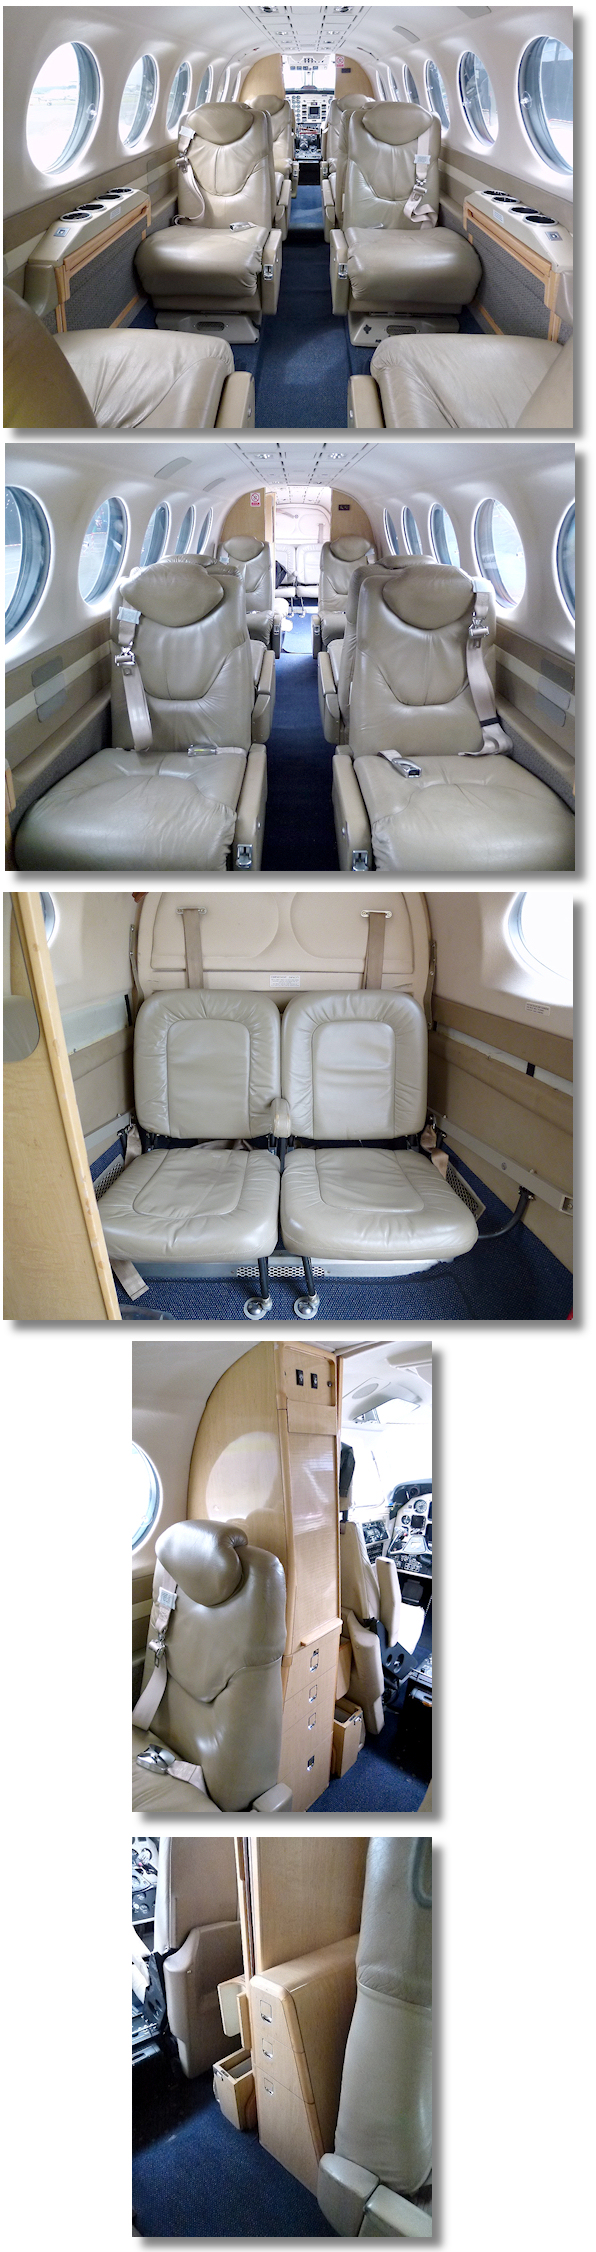 2000 Beechcraft 350 King Air